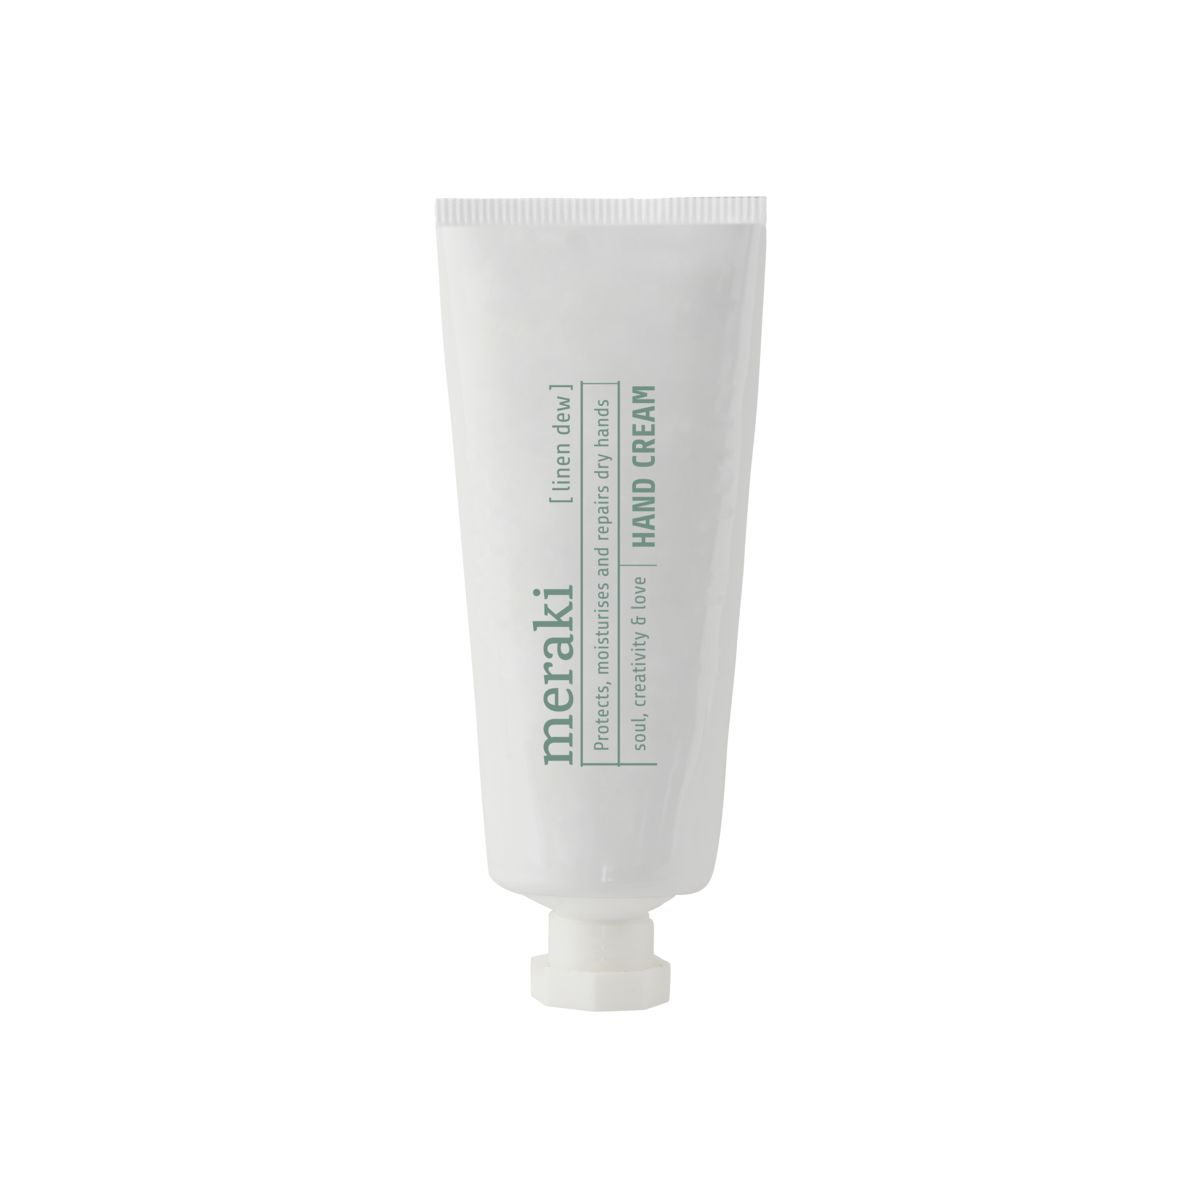 Image of   Meraki håndcreme, Linen Dew, 50 ml.